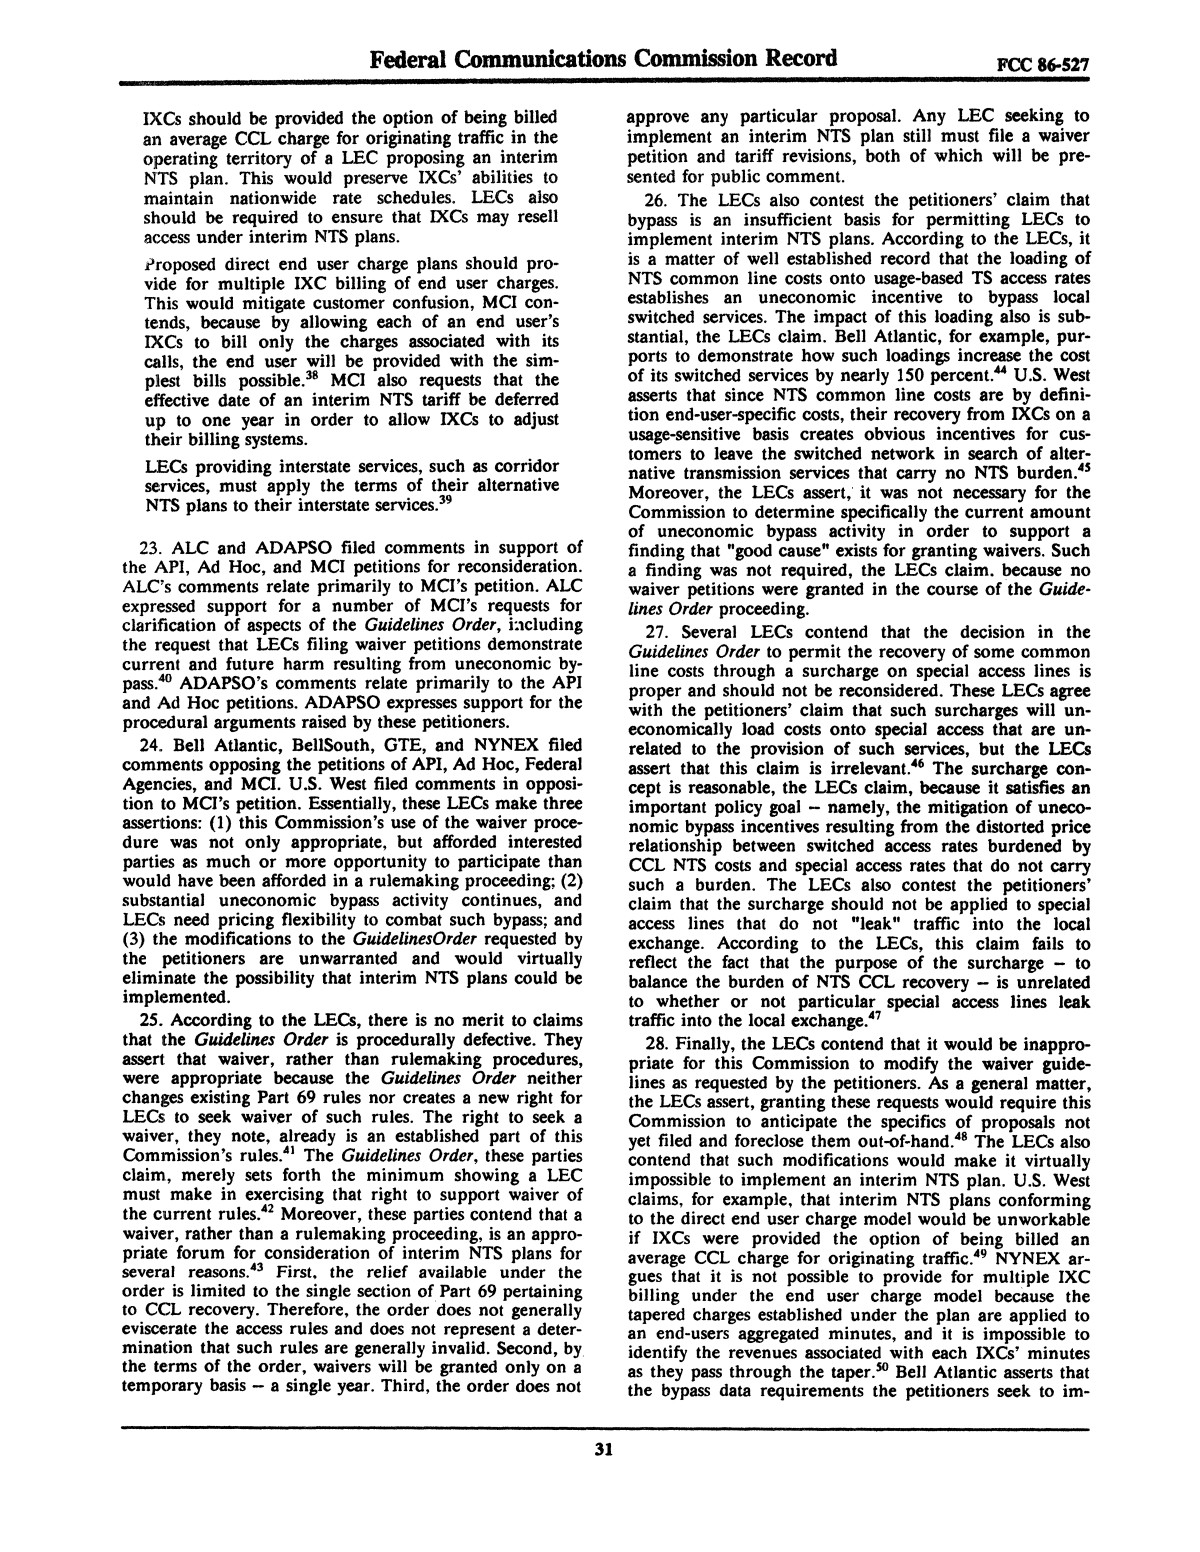 FCC Record, Volume 2, No. 1, Pages 1 to 409, January 5 - January 16, 1987                                                                                                      31